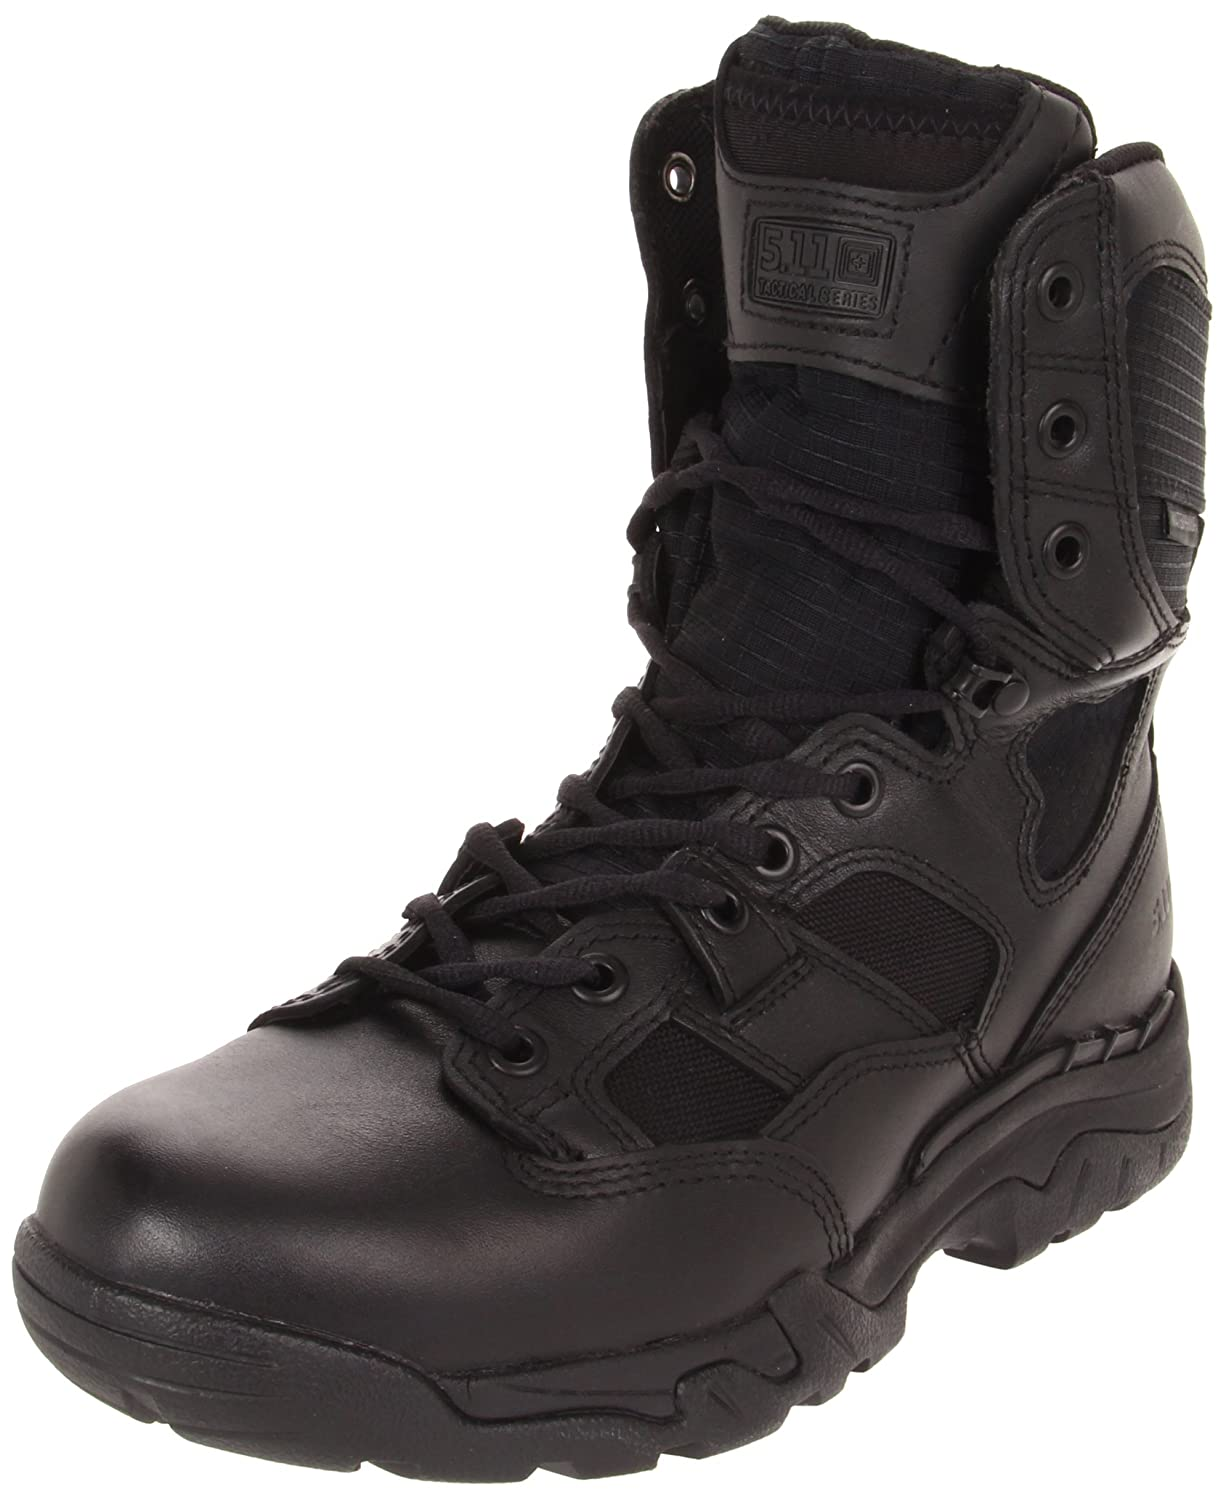 "5.11 - 12037 Men's Waterproof Taclite 8"" Boot"